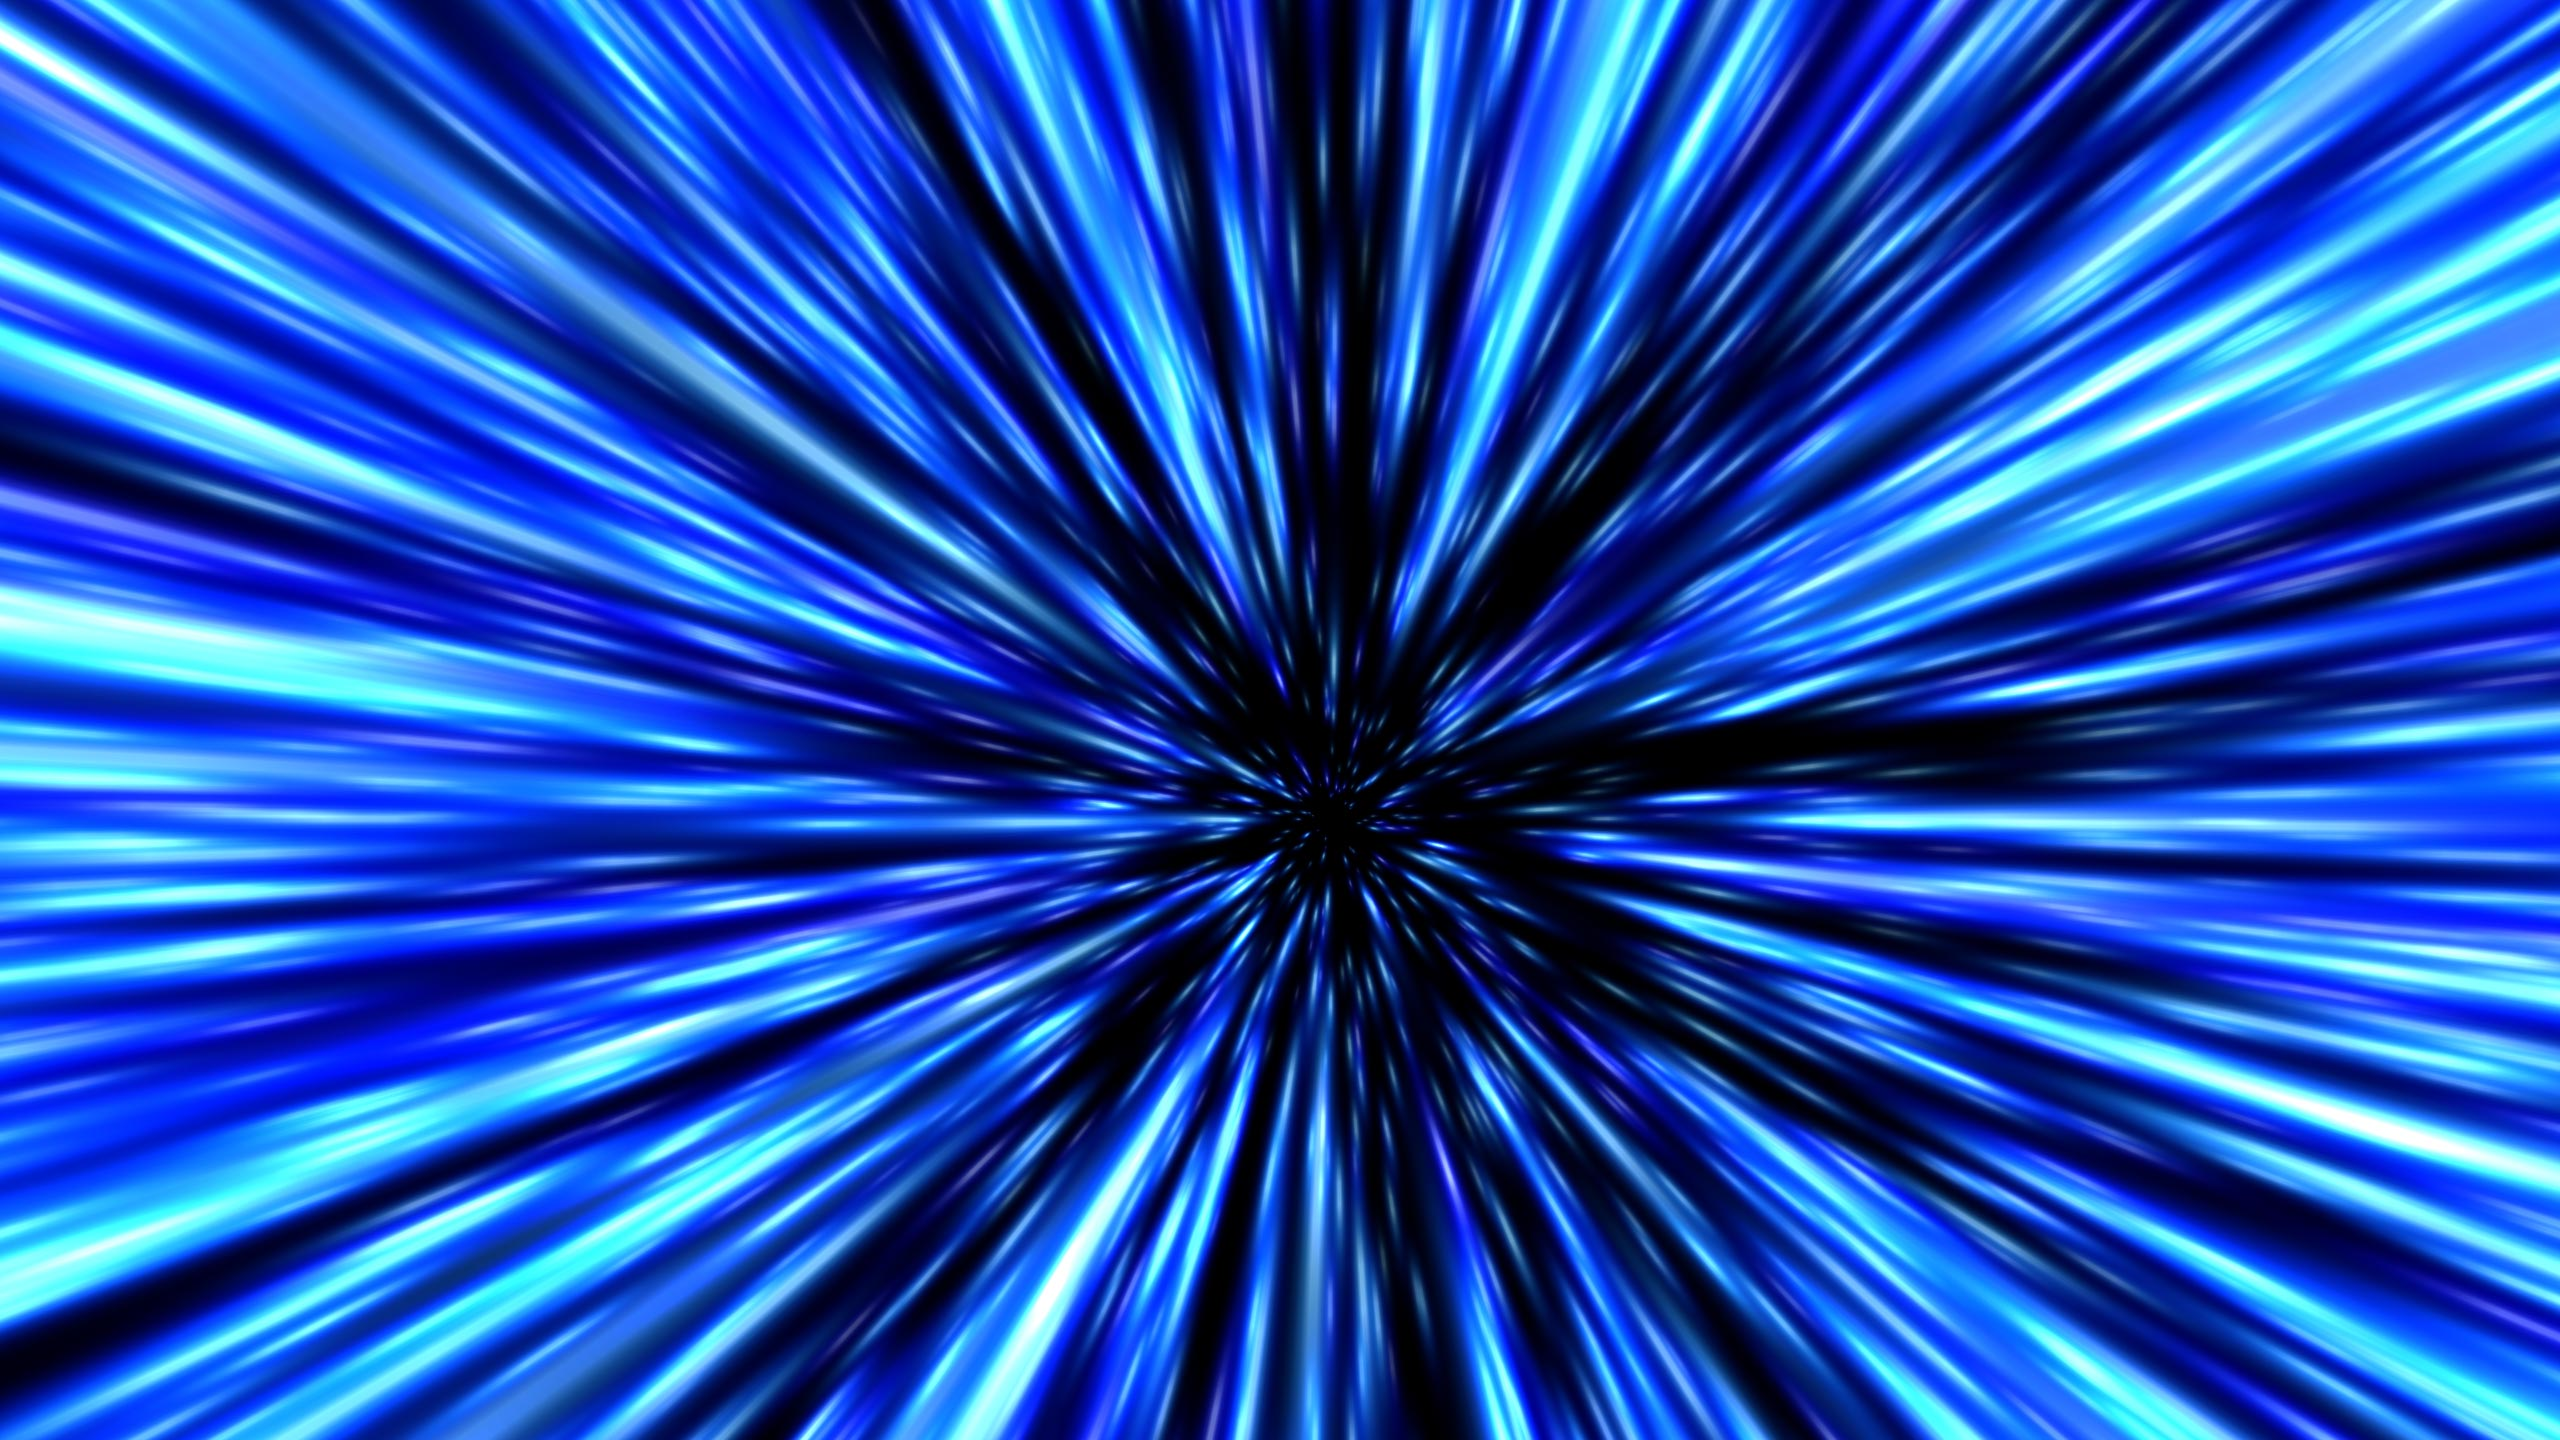 Star Wars Hyperspace Live Wallpaper